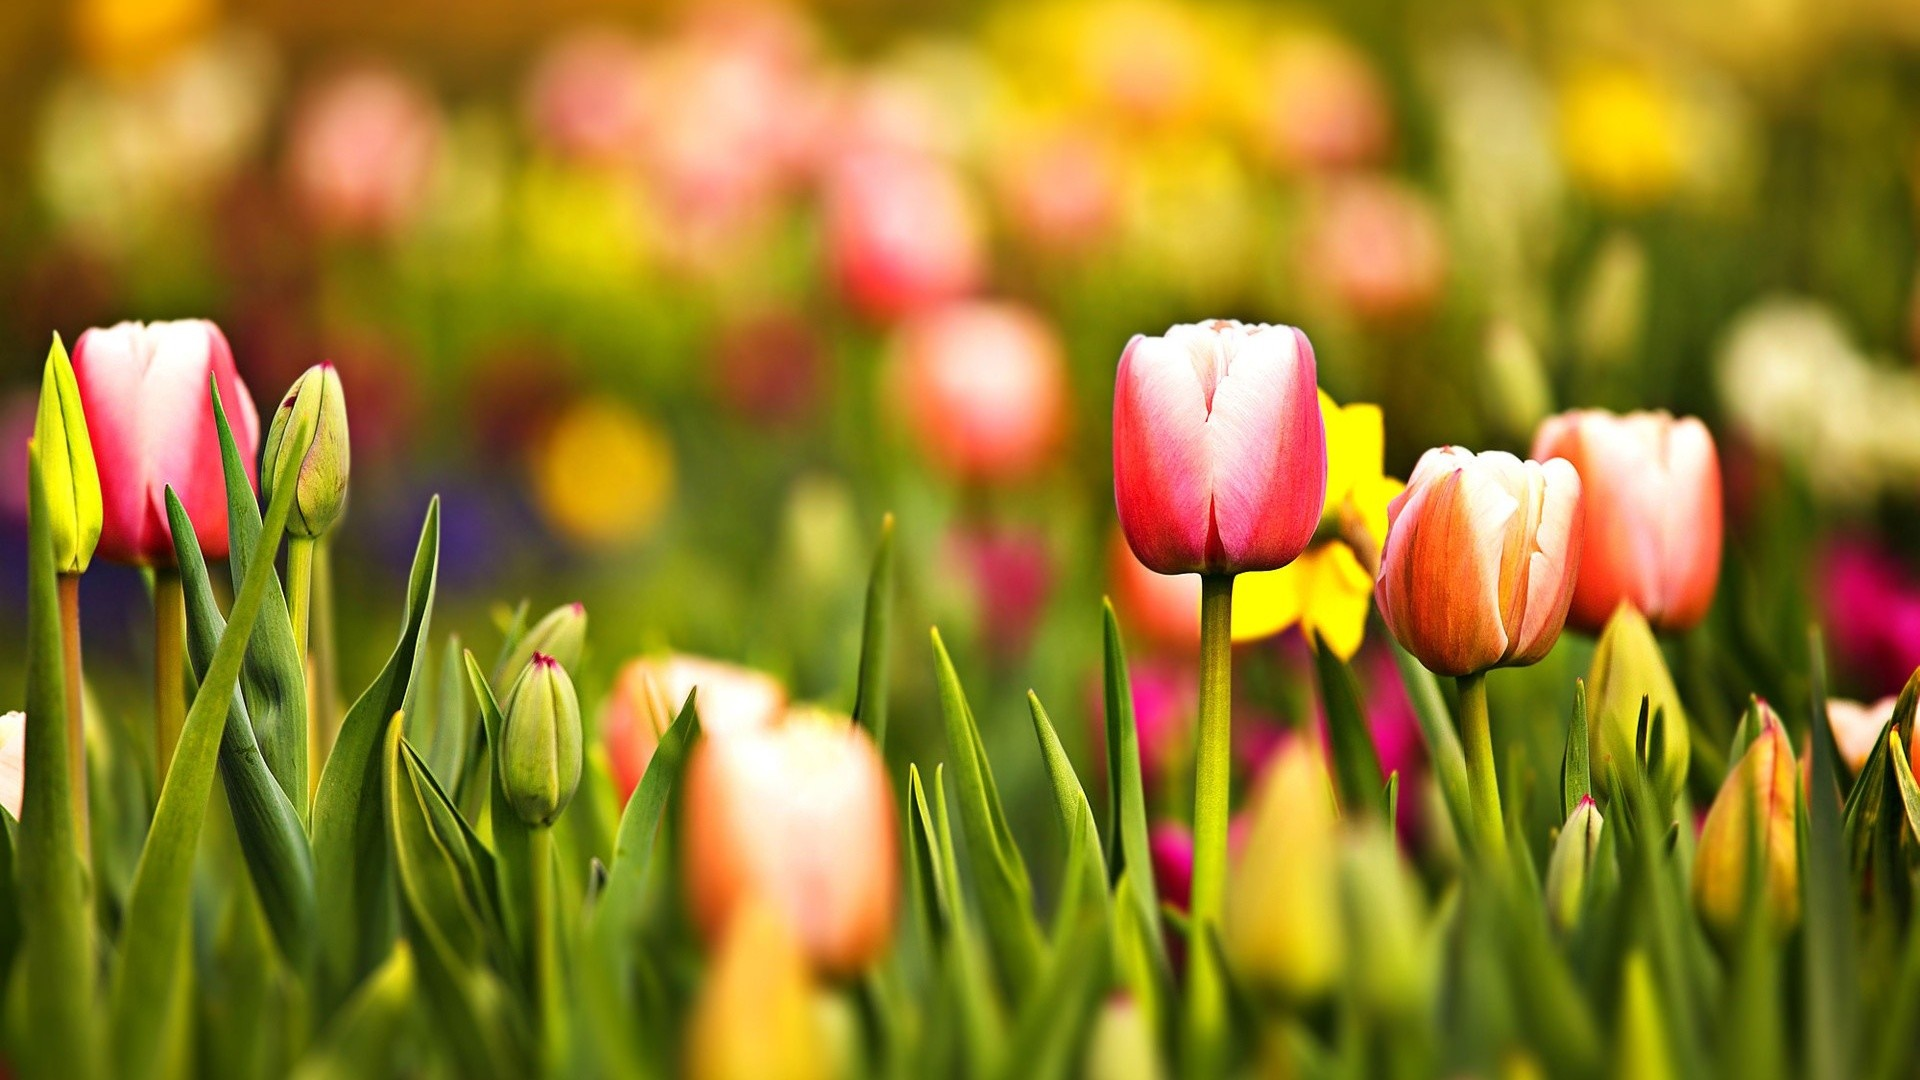 1920x1080 Spring Wallpapers HD download free – HD Wallpapers,1080p .